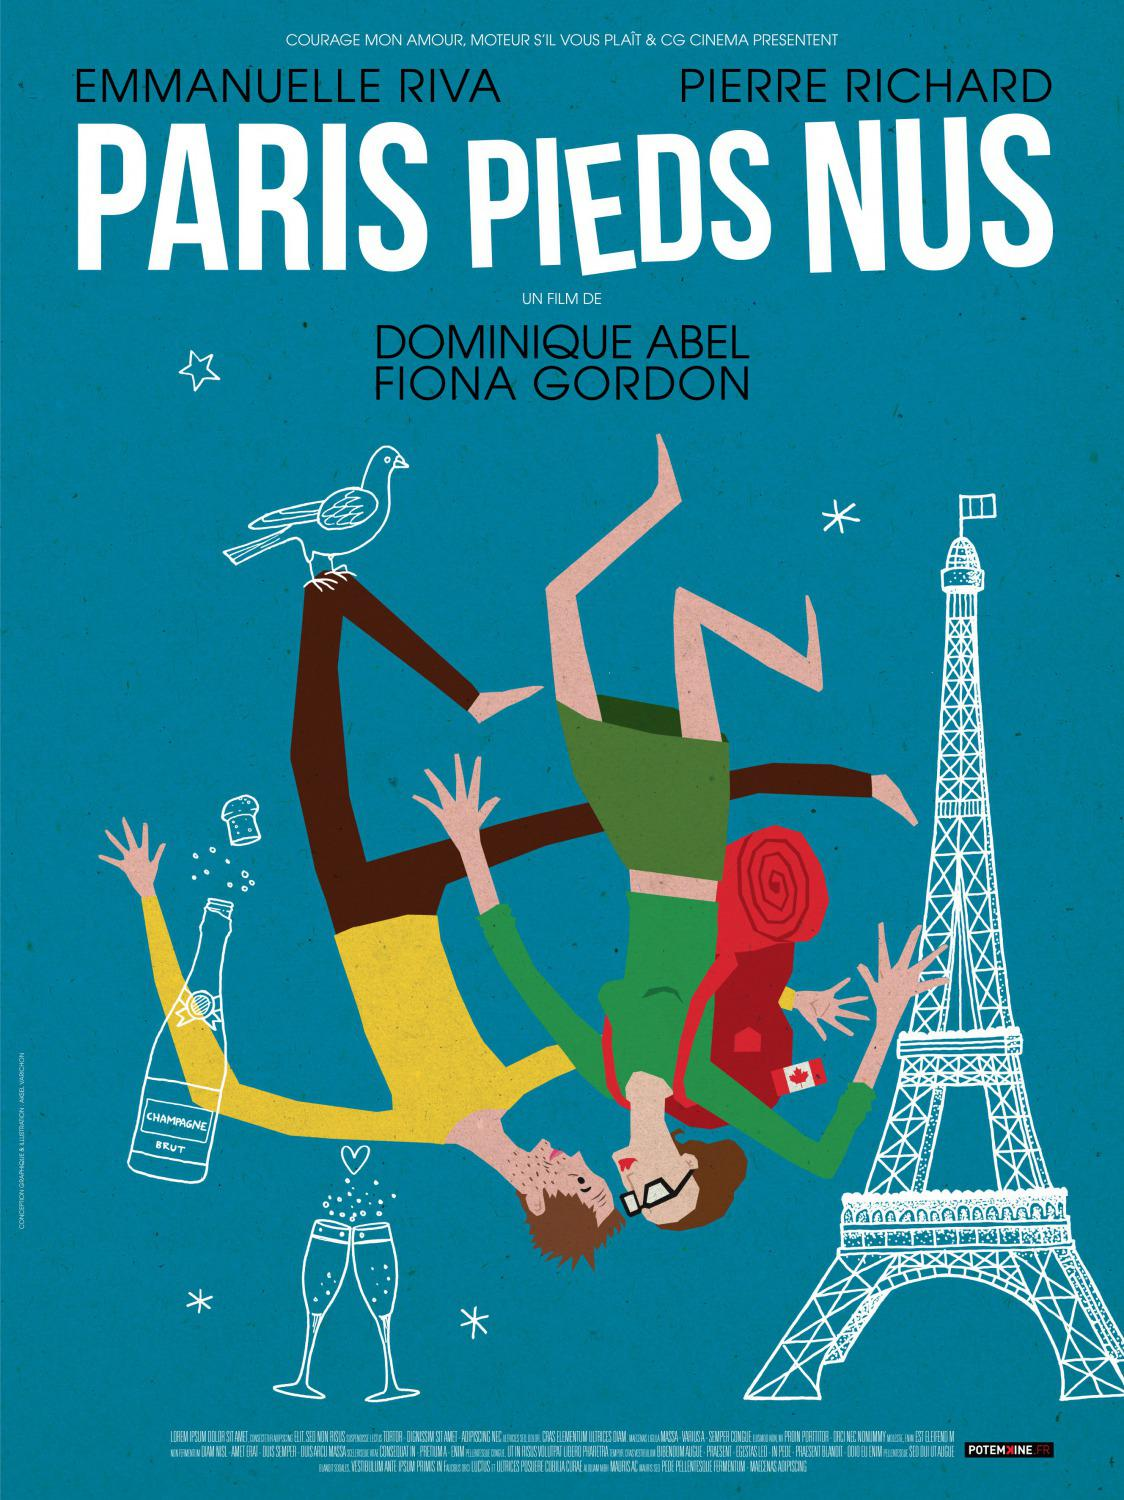 Lost in Paris - Paris Pieds Nus - Fiona Gordon - Dominique Abel - Emanuelle Riva - Pierre Richard - film poster 2017